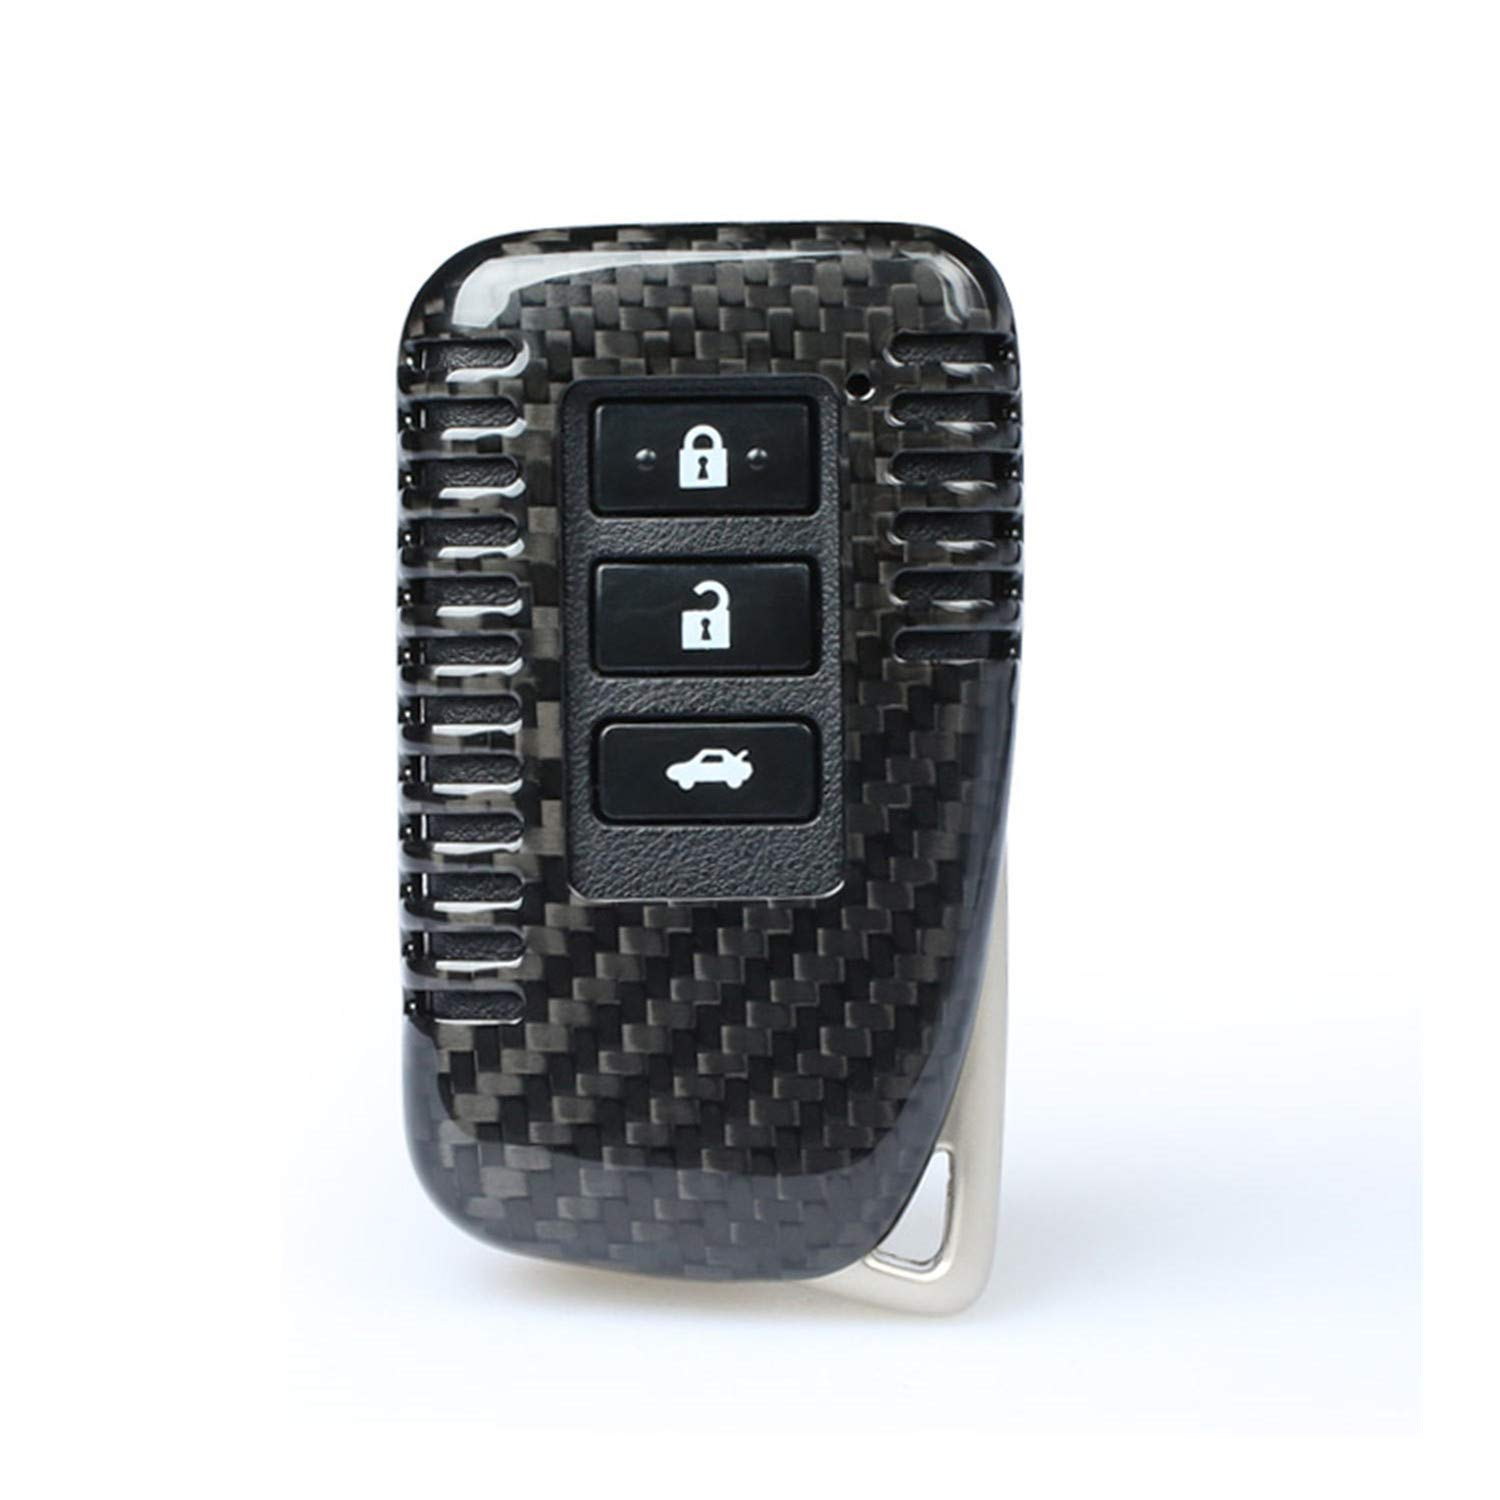 Fits Lexus NX RX LX is ES GS RC F Smart Keyless Start Stop Engine Car Key Carbon Fiber Key Fob Cover for Lexus Key Fob Remote Key Black 4 Buttons Light Weight Glossy Key Fob Protection Case